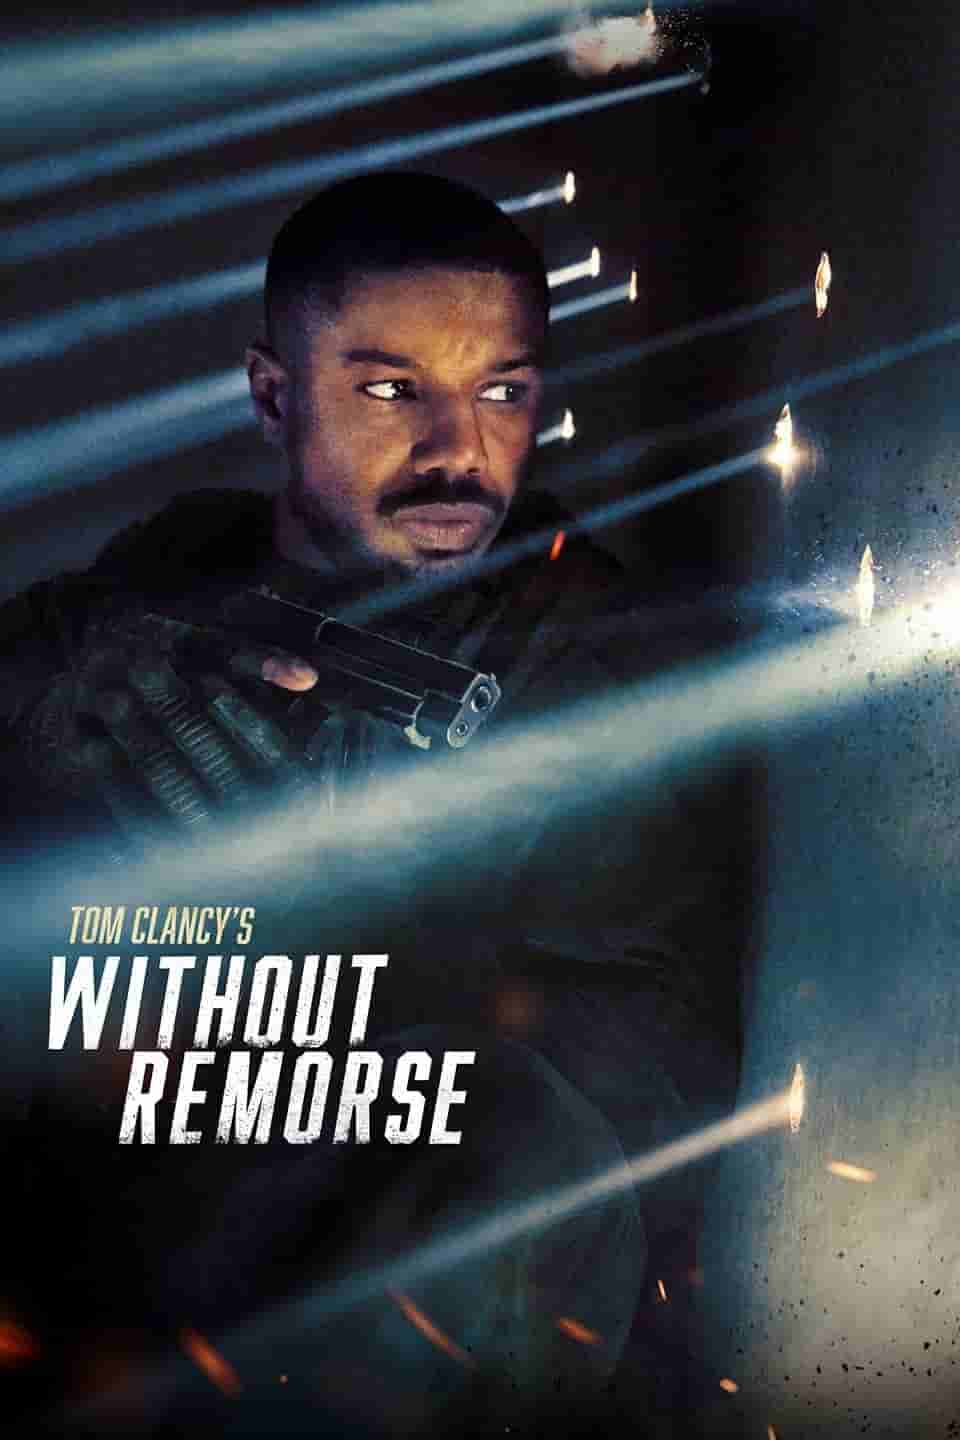 Without Remorse full movie download 720p online